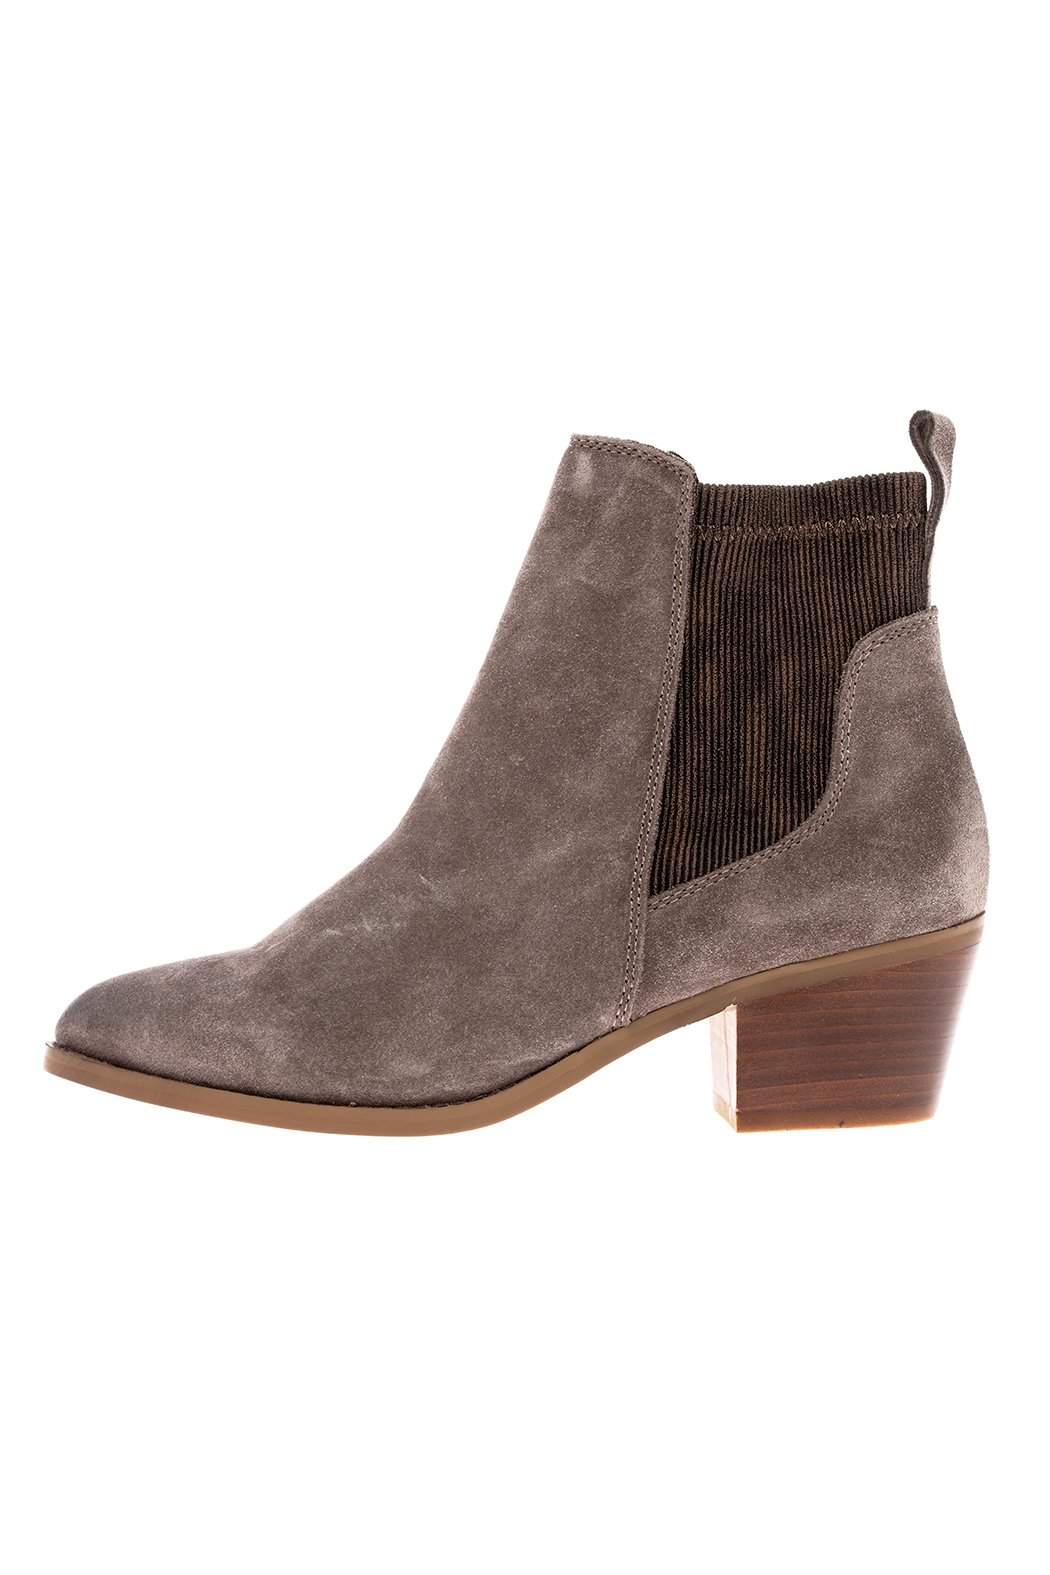 Chelase Style Suede Bootie